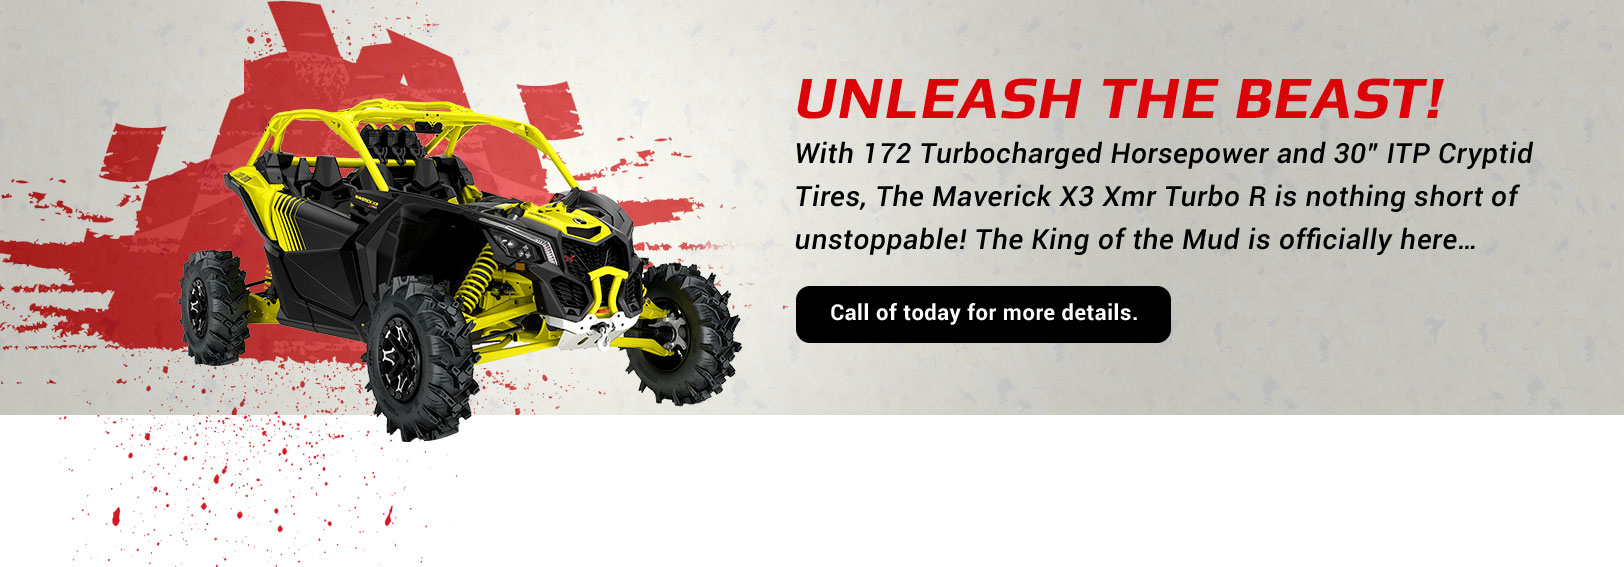 "Unleash the Beast!, With 172 Turbocharged Horsepower and 30"" ITP Cryptid Tires, The Maverick X3 Xmr Turbo R is nothing short of unstoppable! The King of the Mud is officially here…..Call of today for more details."